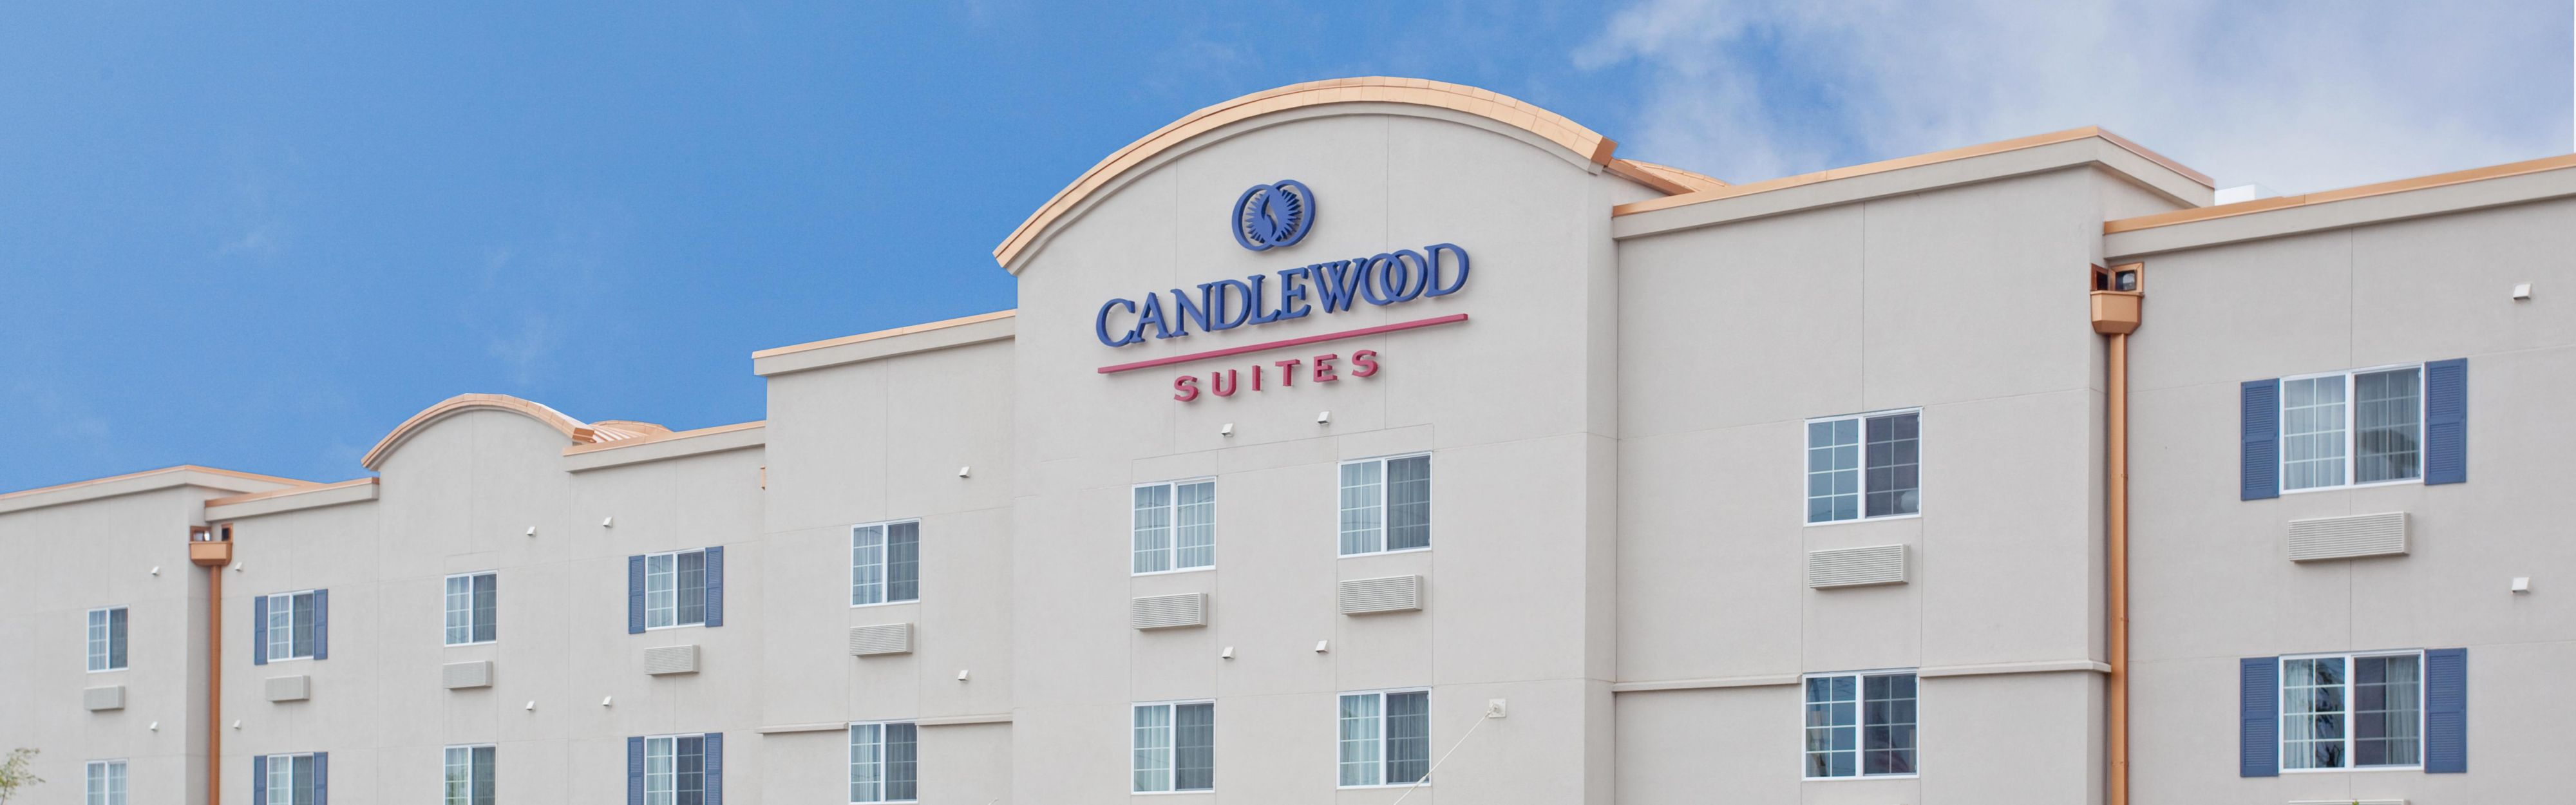 Candlewood Suites Elgin NW-Chicago image 0